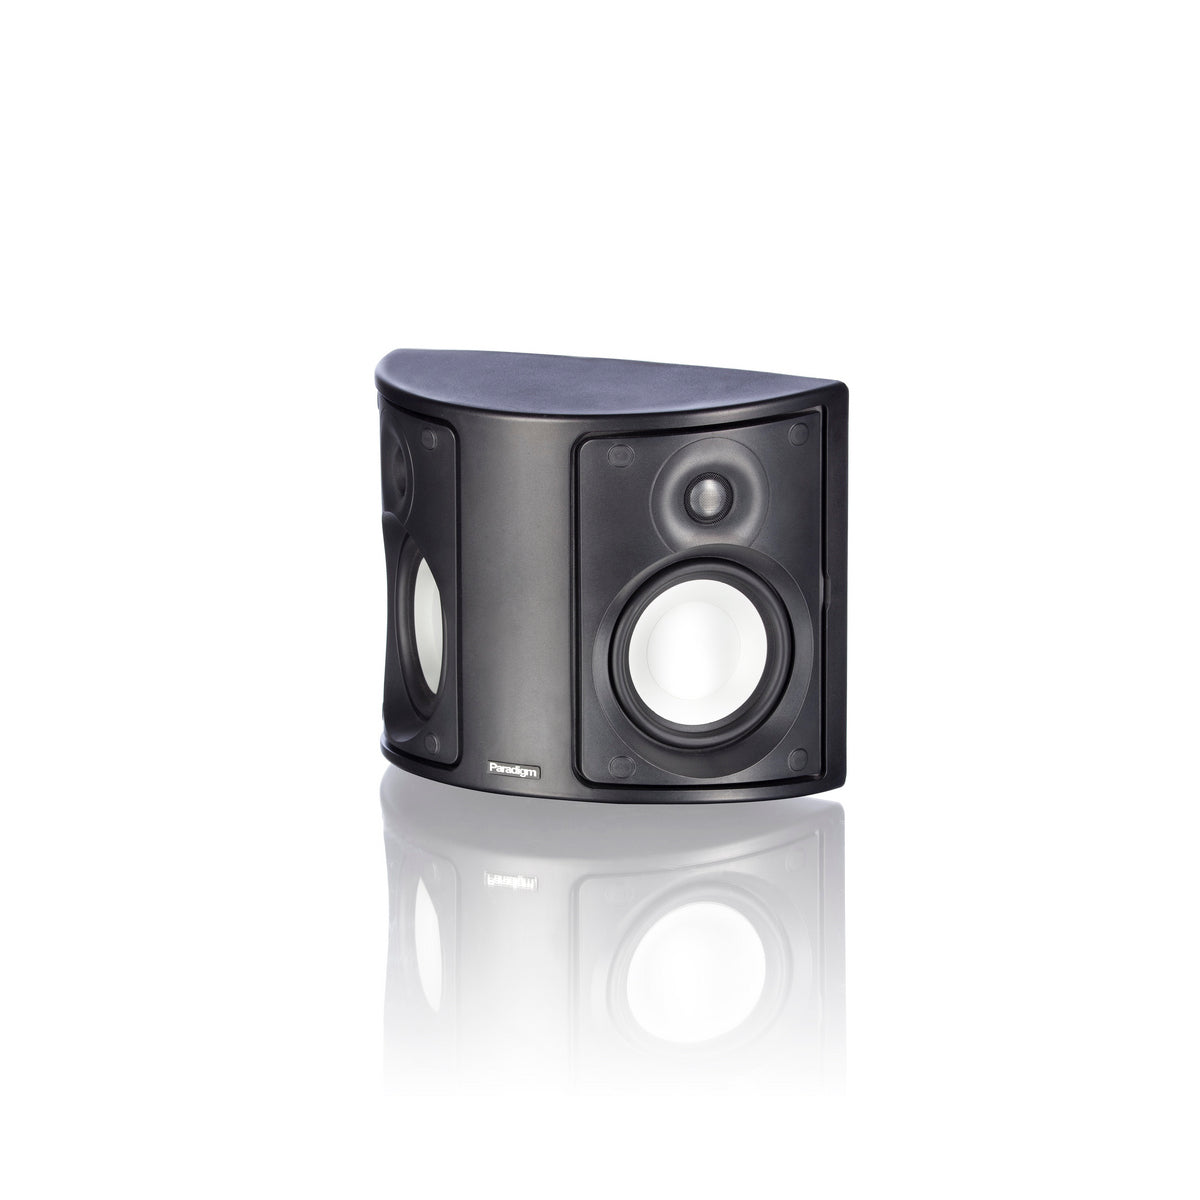 Paradigm Surround 3 - Surround Speaker - Pair, Paradigm, Surround Speaker - AVStore.in